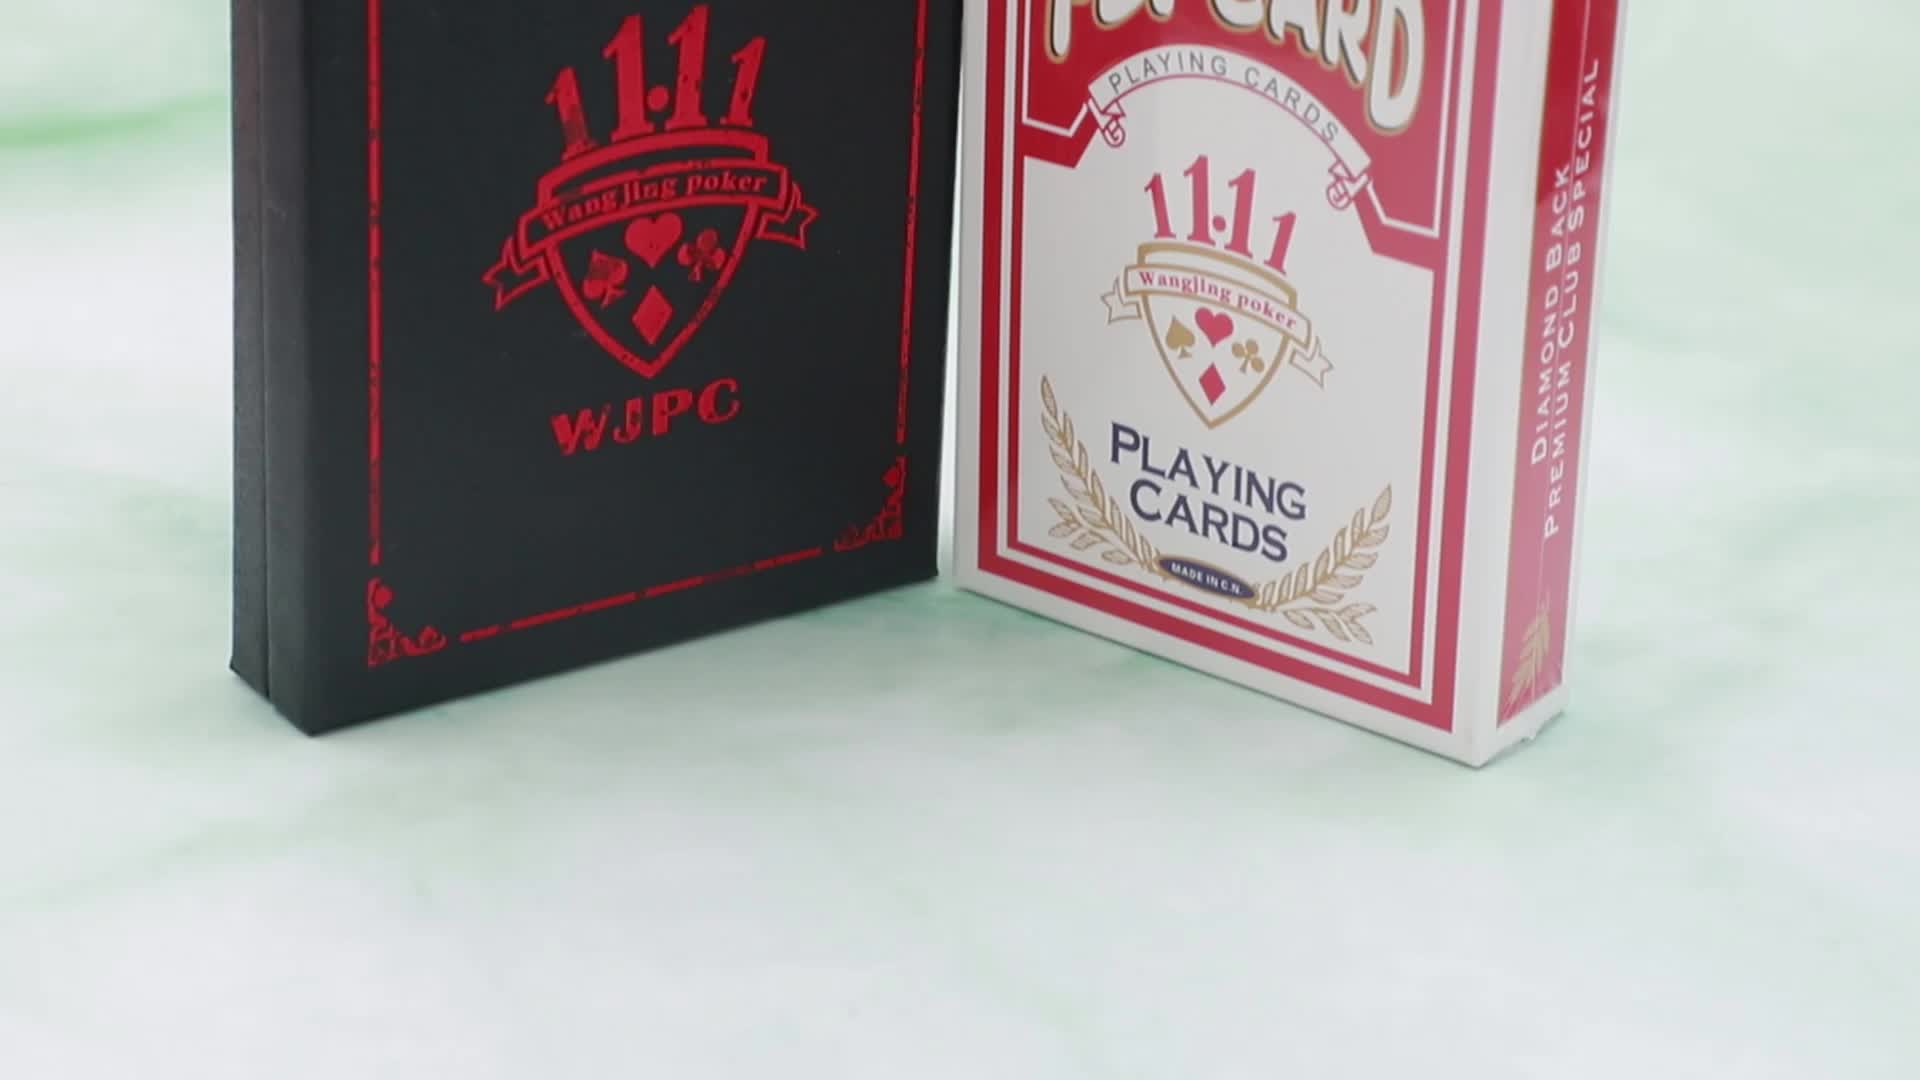 WJPC-Magic Trick Playing Cards Printing With Pro Service WJ-M235